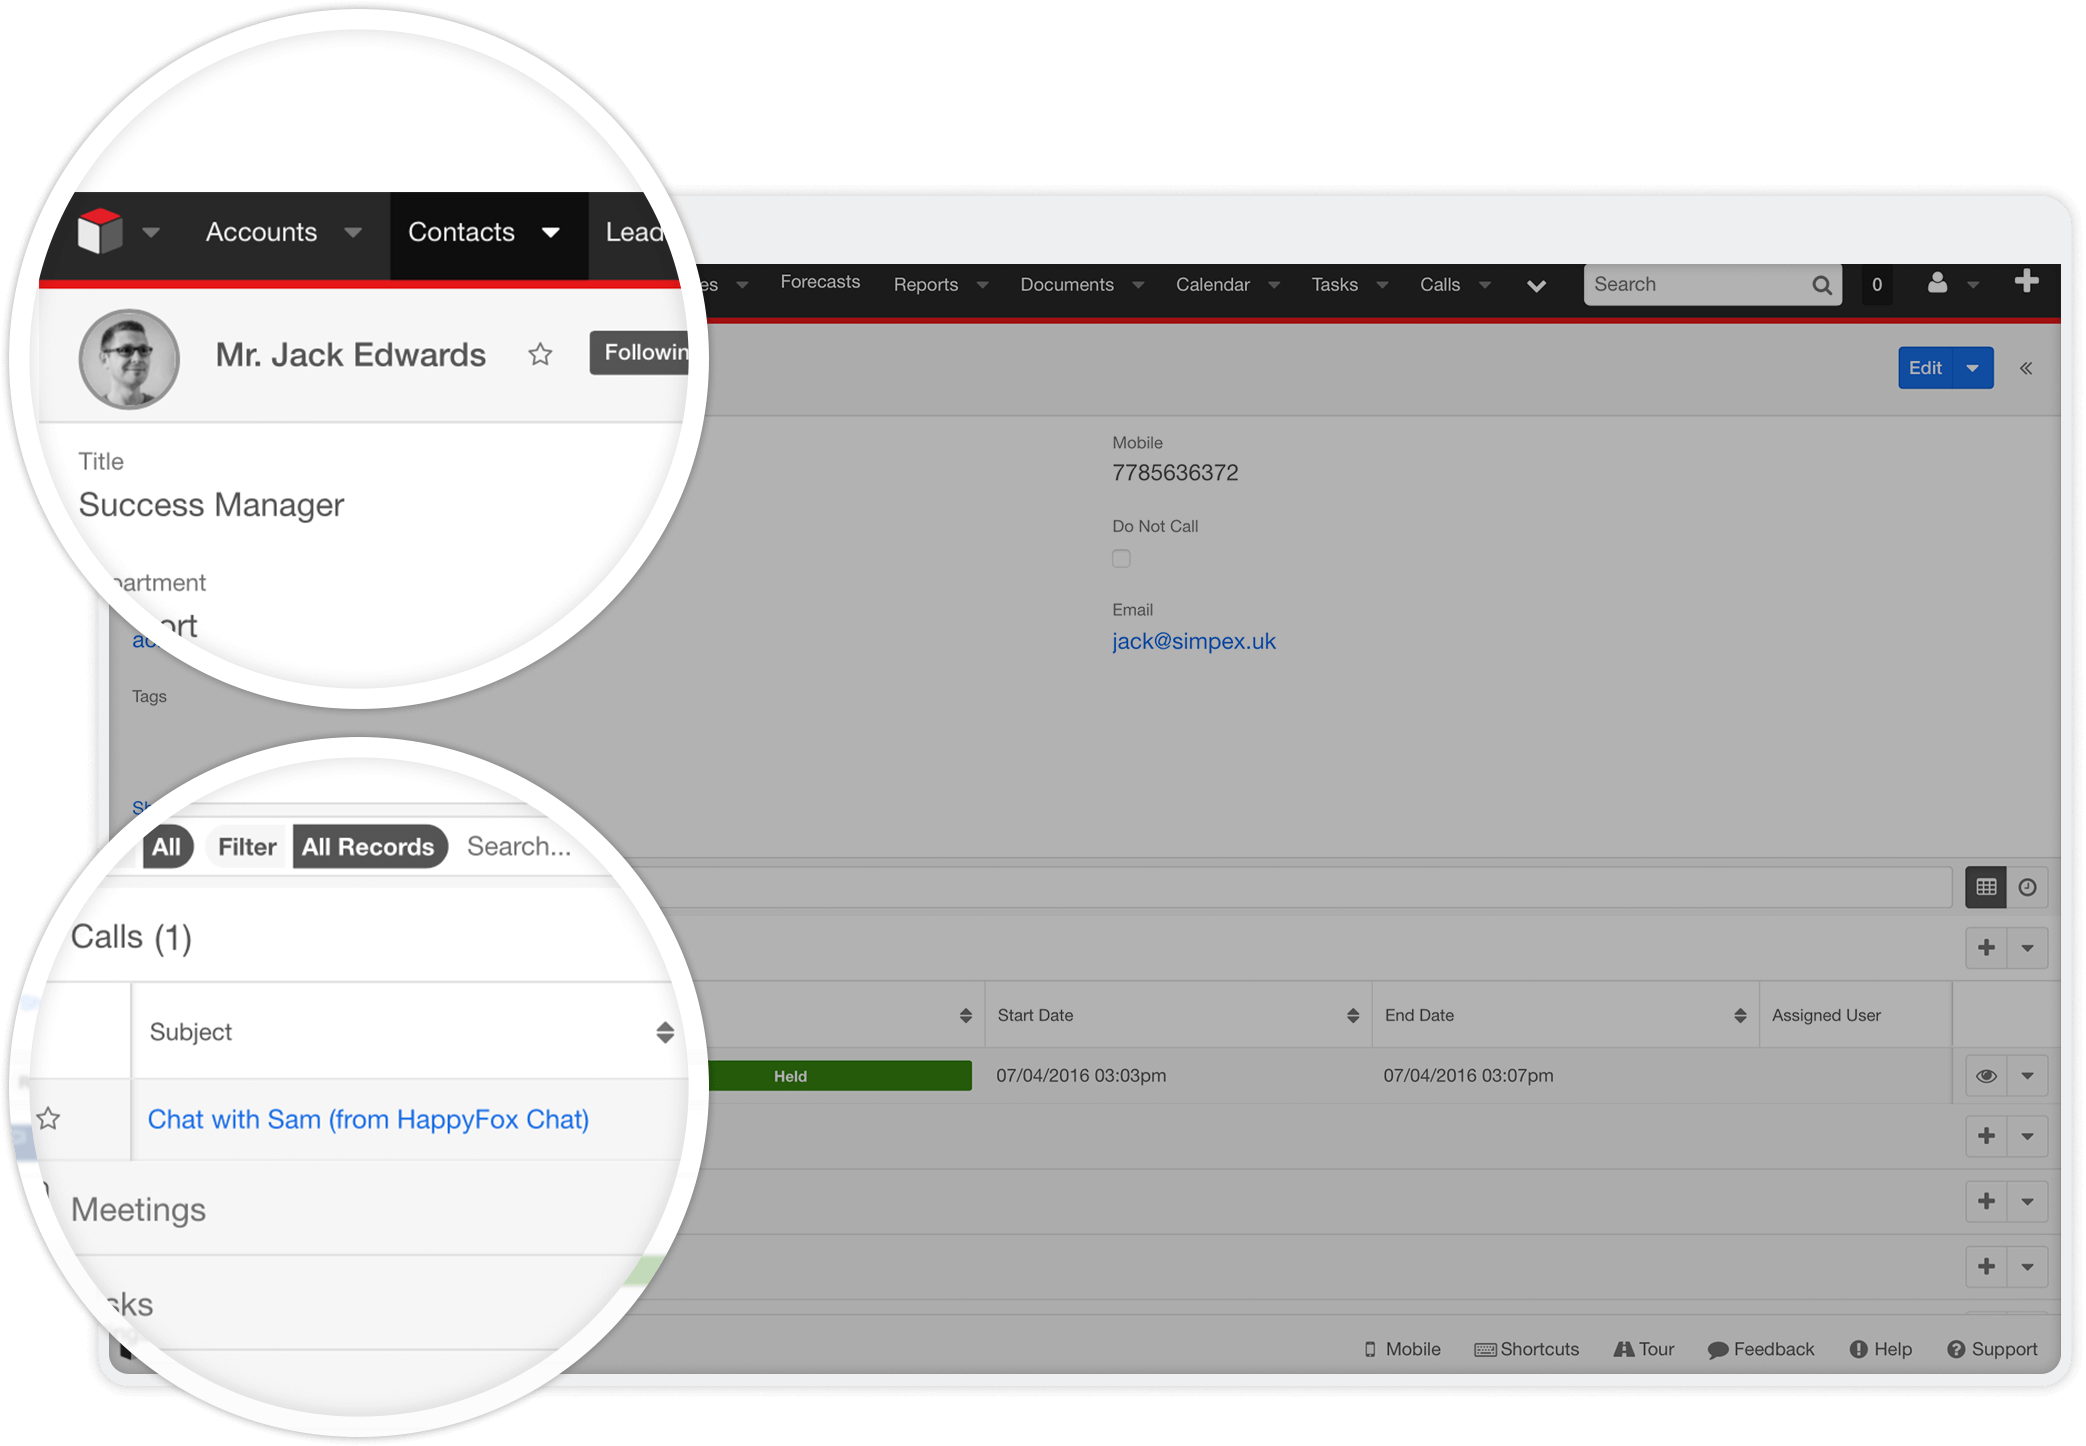 Automatically add contacts or leads in SugarCRM